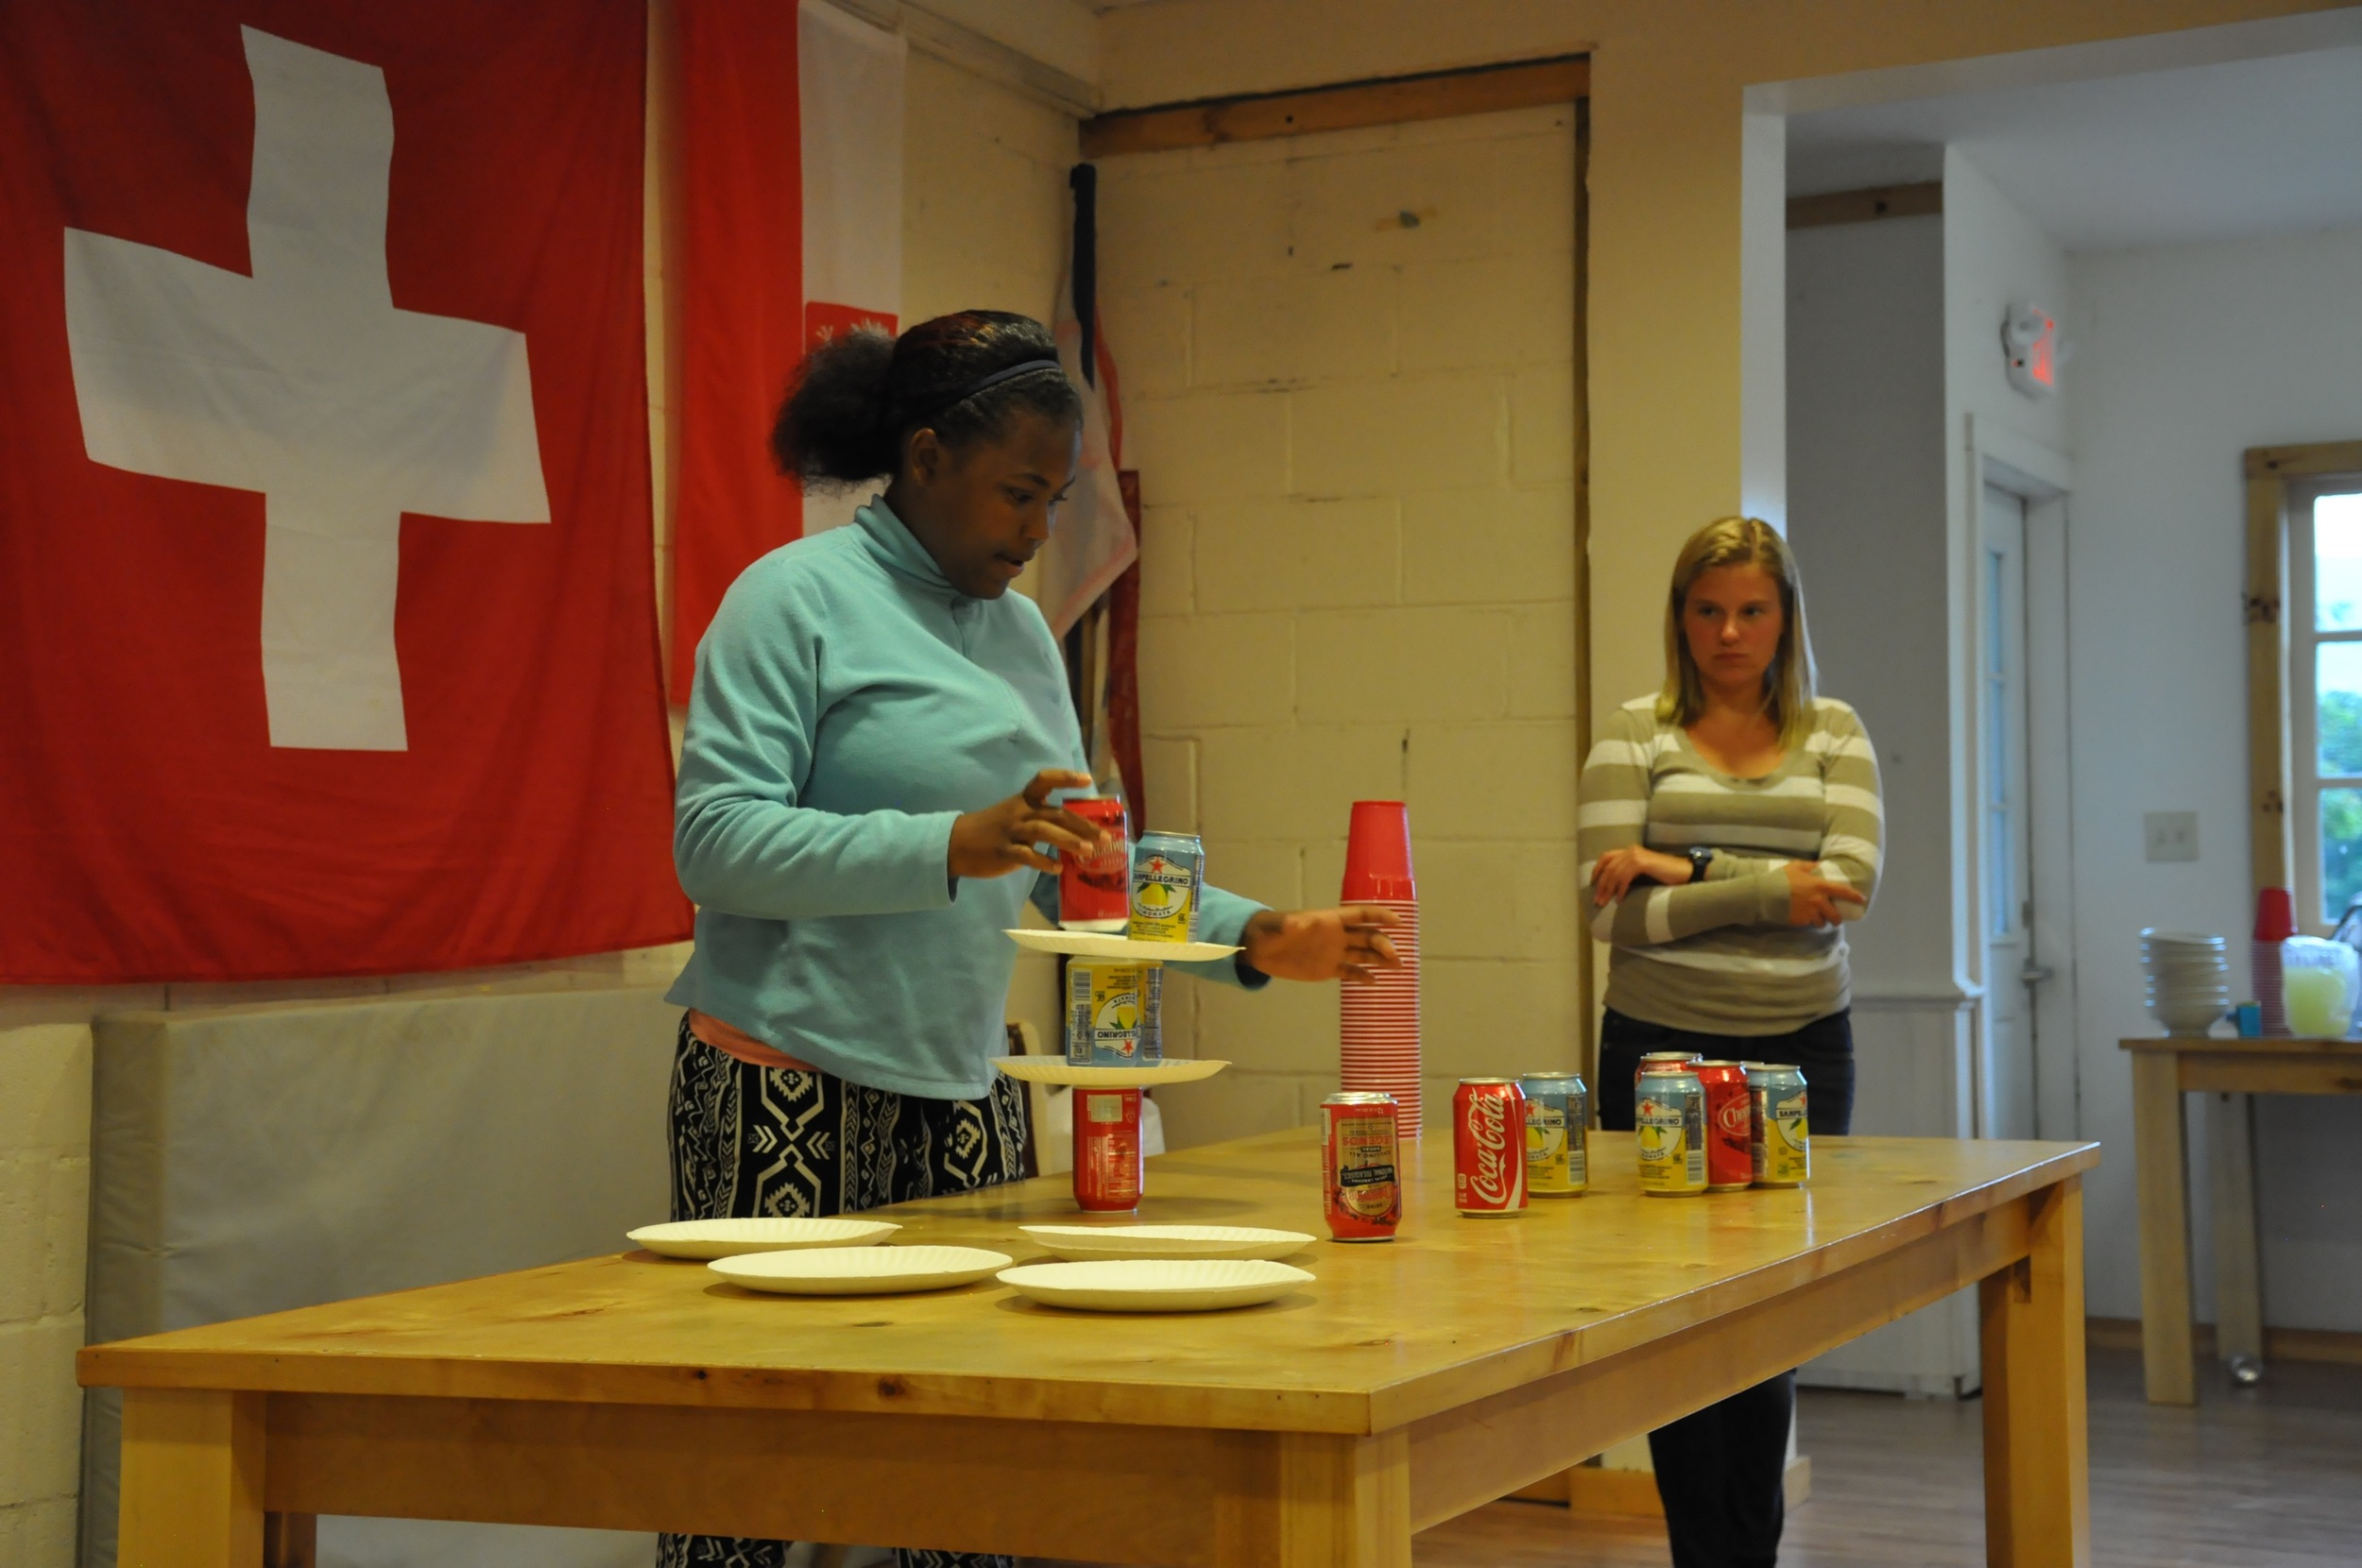 making-a-reverse-pyramid-out-of-paper-plates-and-aluminum-cans.jpg